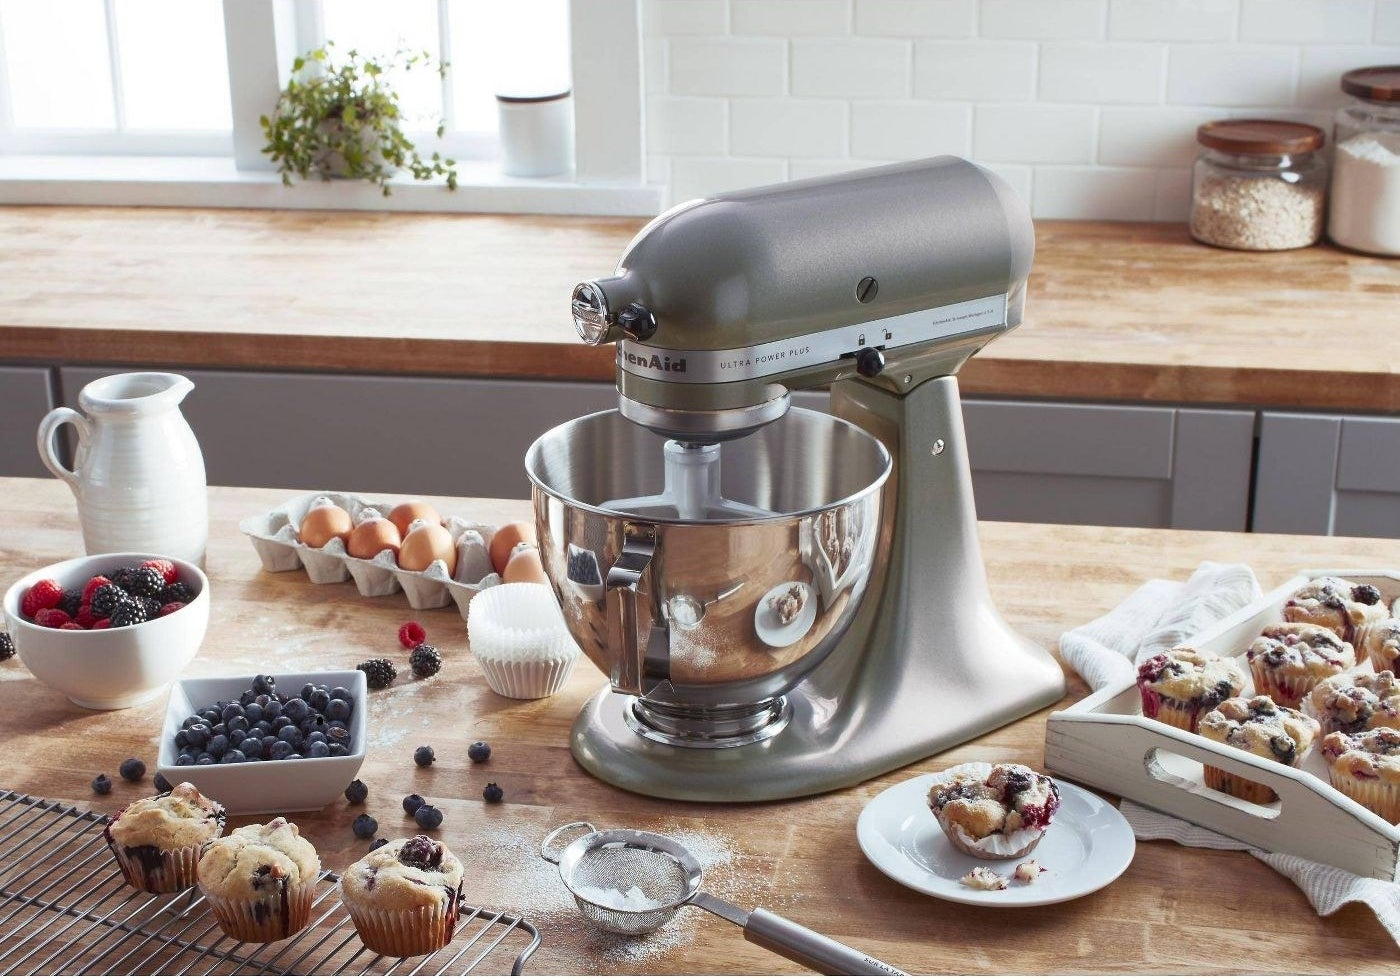 The silver stand mixer